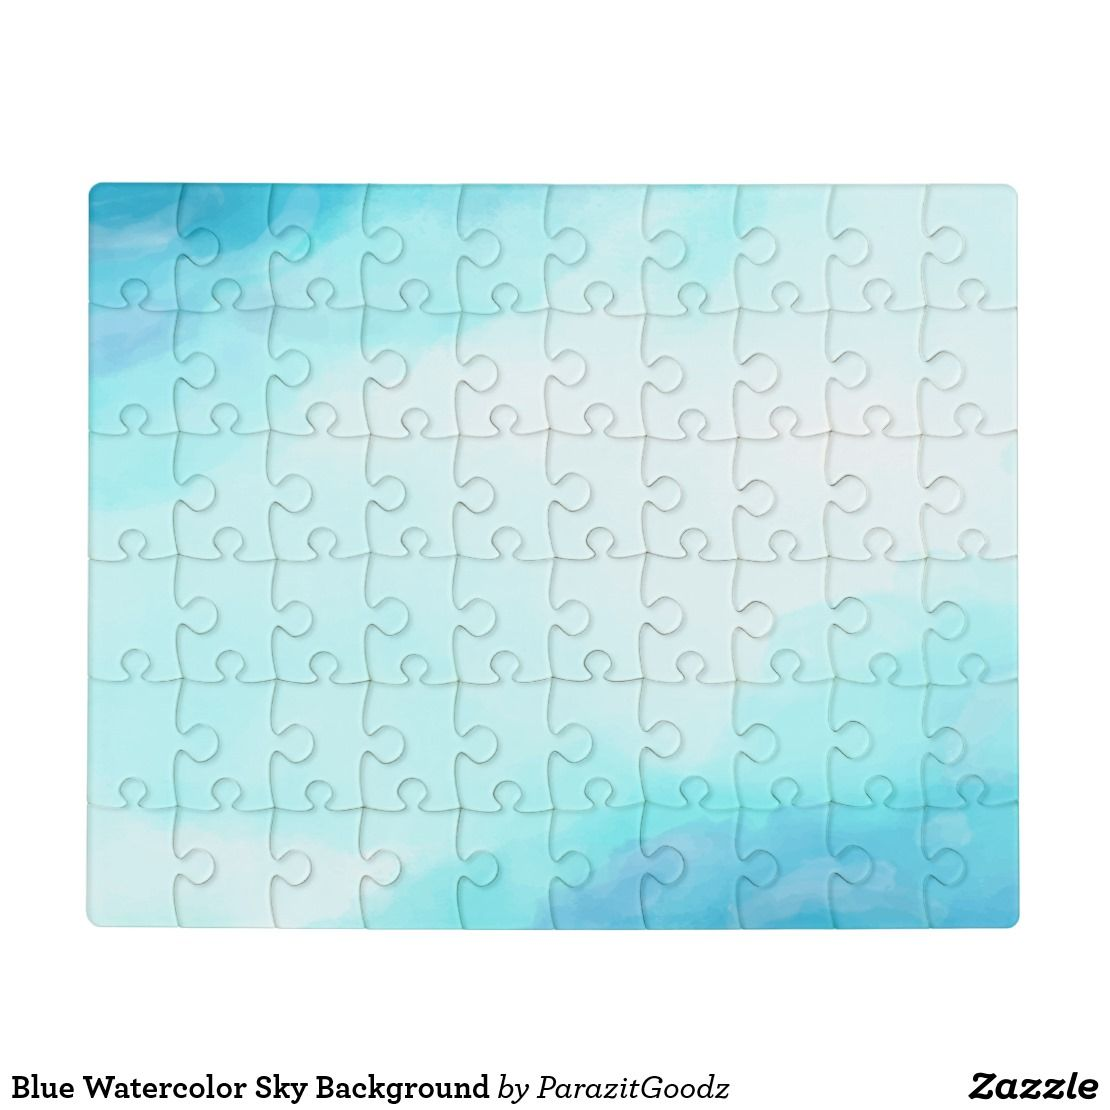 Blue Watercolor Sky Background Jigsaw Puzzle Zazzle Com Watercolor Sky Blue Watercolor Jigsaw Puzzles